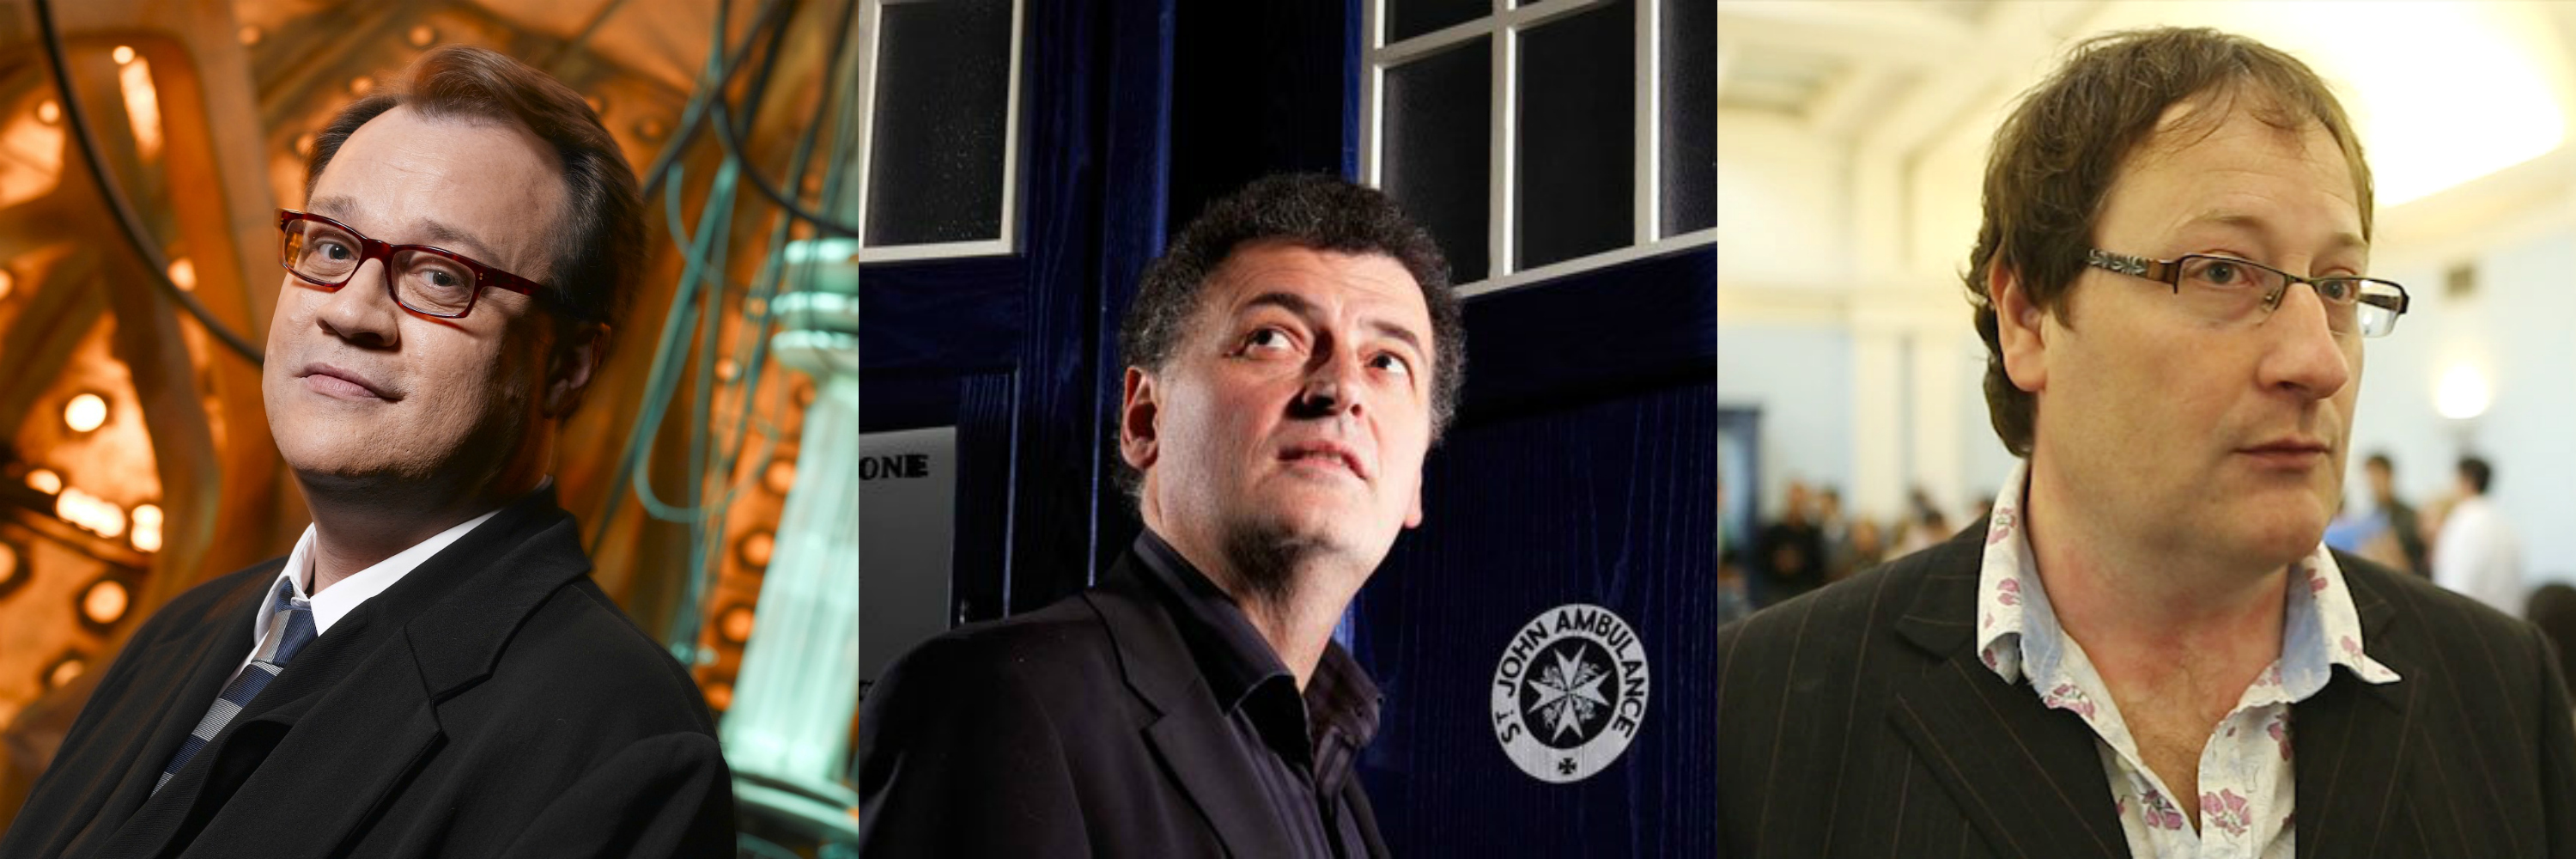 Russell T. Davies (left) has refused Steven Moffat's (center) repetitive offers to return to write for 'Doctor Who.' It looks as if Moffat will do the same for upcoming 'Doctor Who' showrunner Chris Chibnall (right).